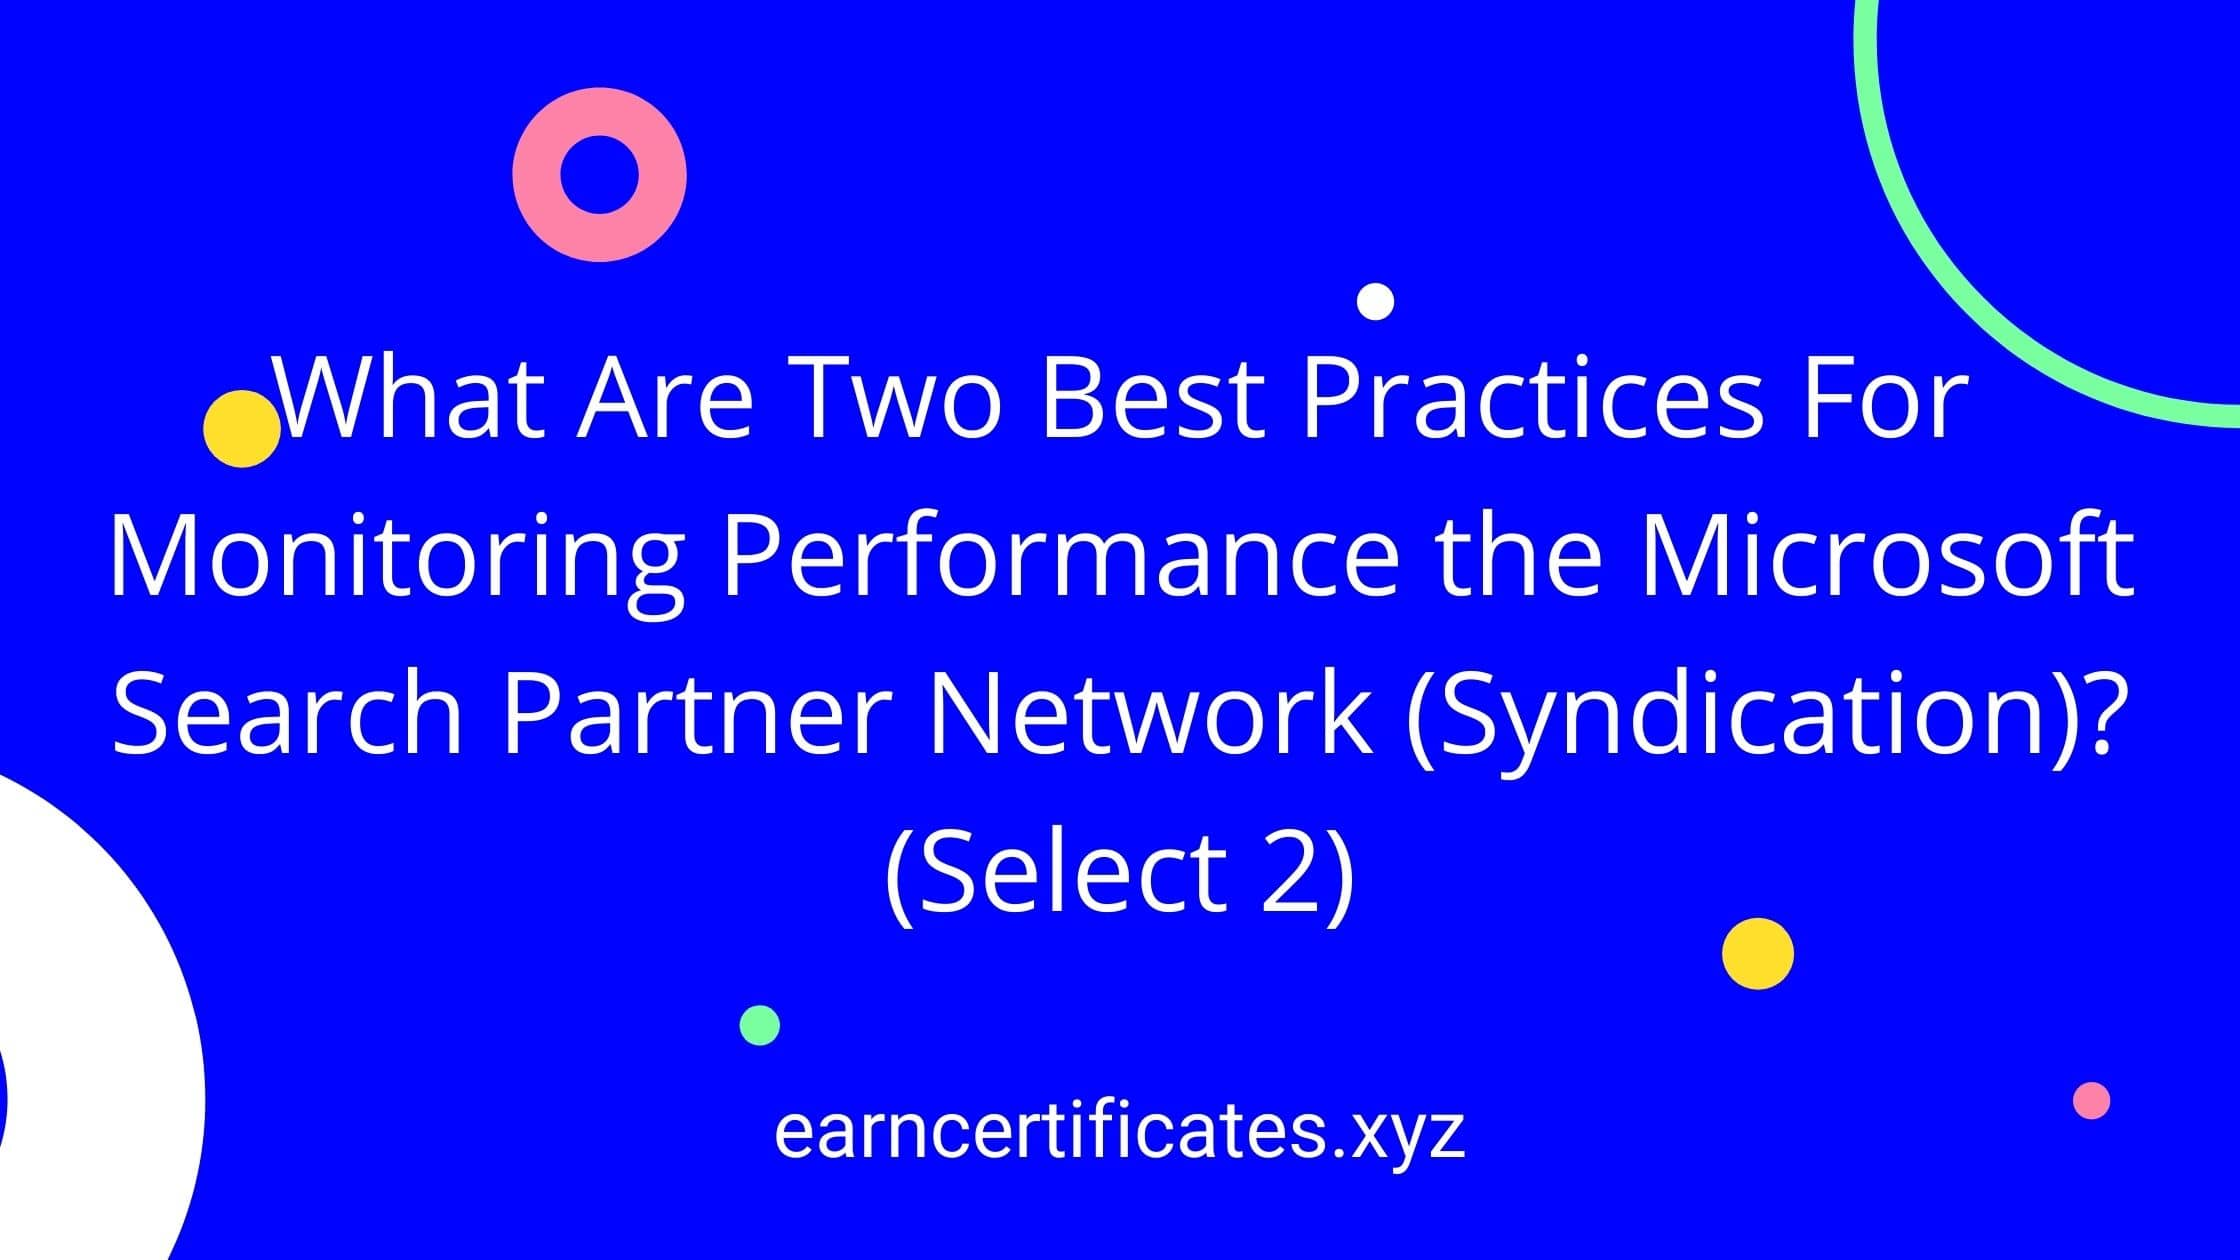 What Are Two Best Practices For Monitoring Performance the Microsoft Search Partner Network (Syndication)? (Select 2)